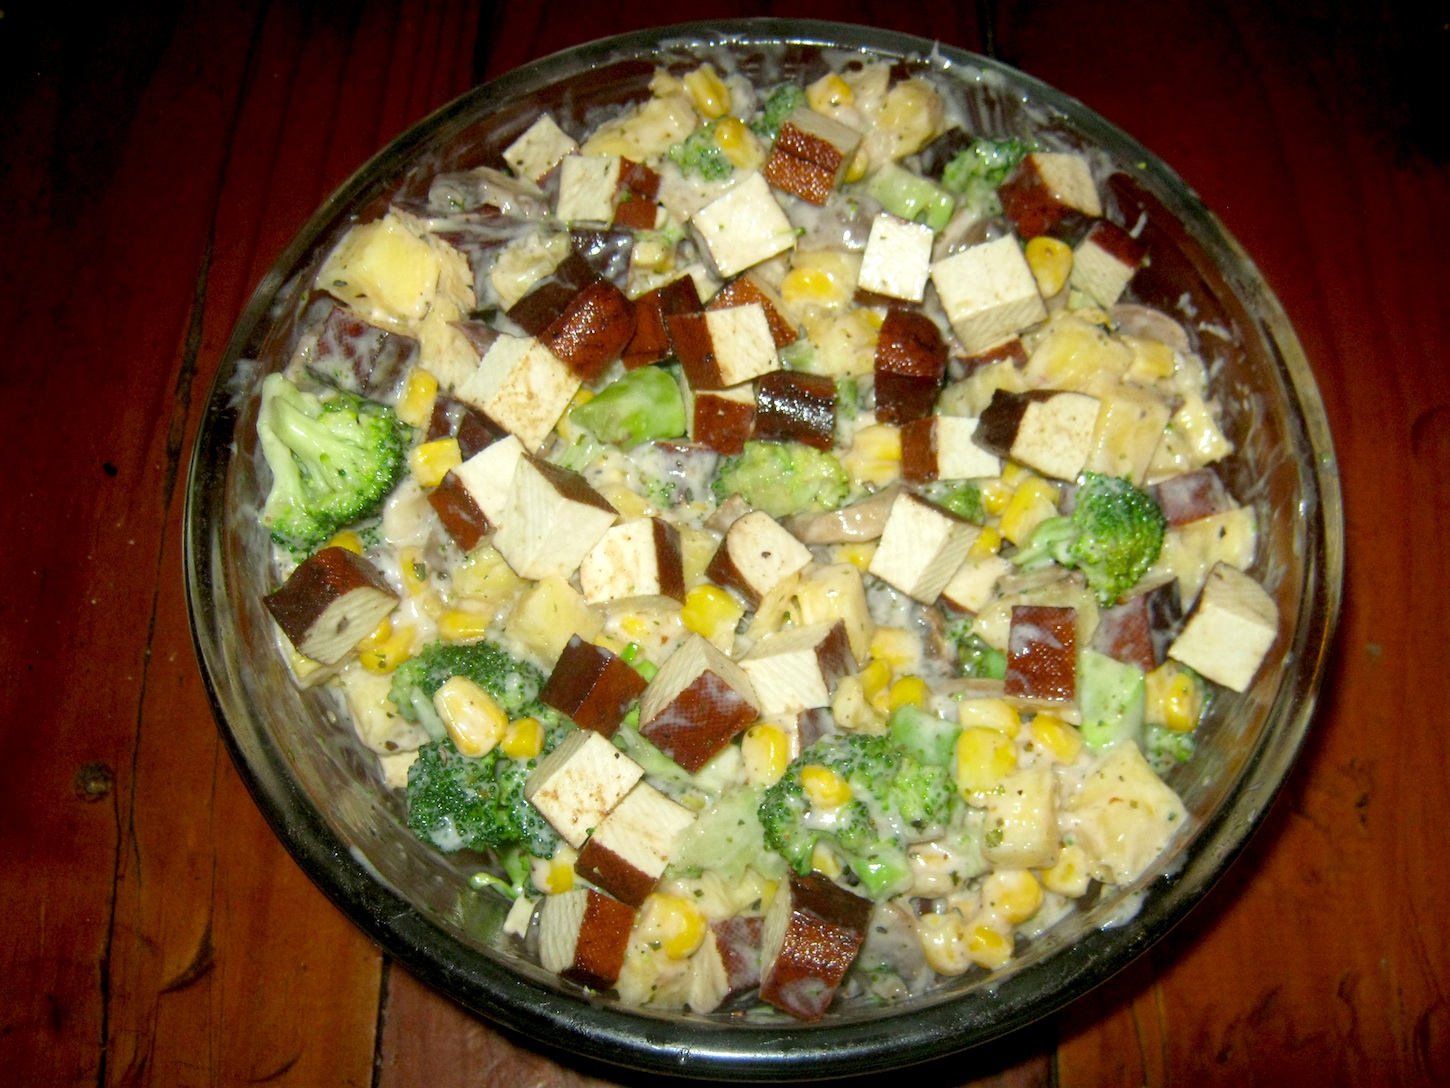 Smoked Tofu Salad